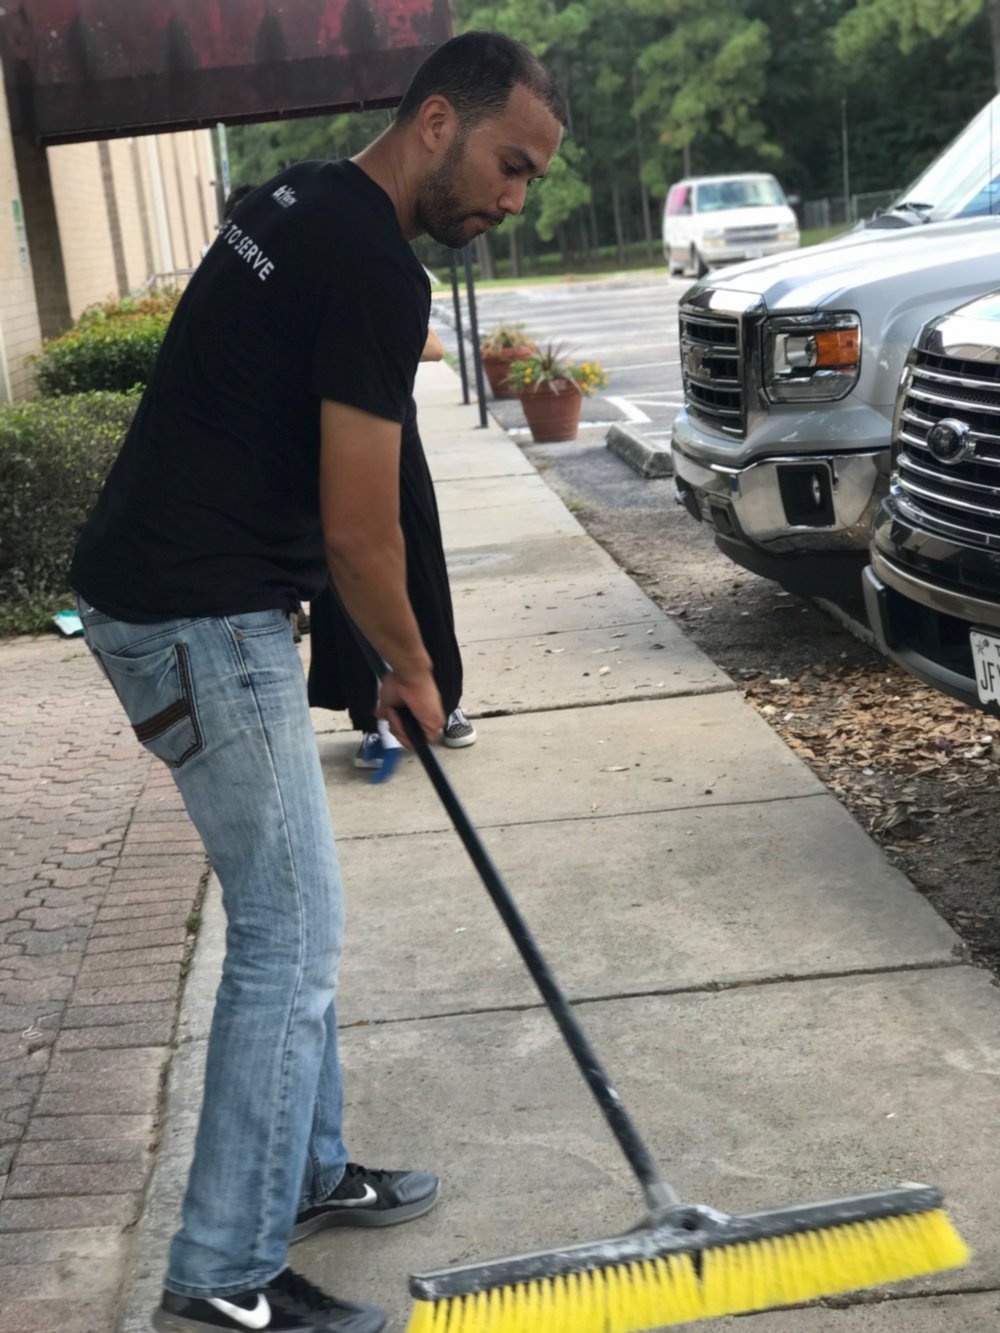 Chris Chung sweeping school grounds.